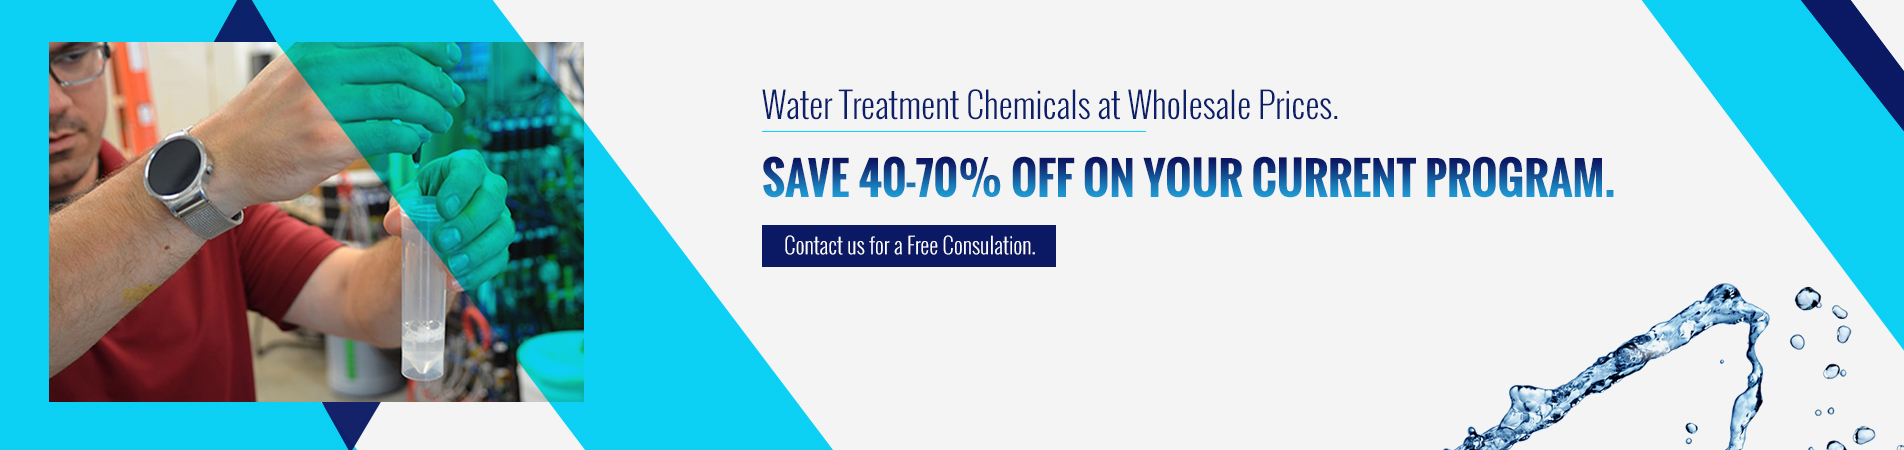 water treatment chemicals at wholesale prices